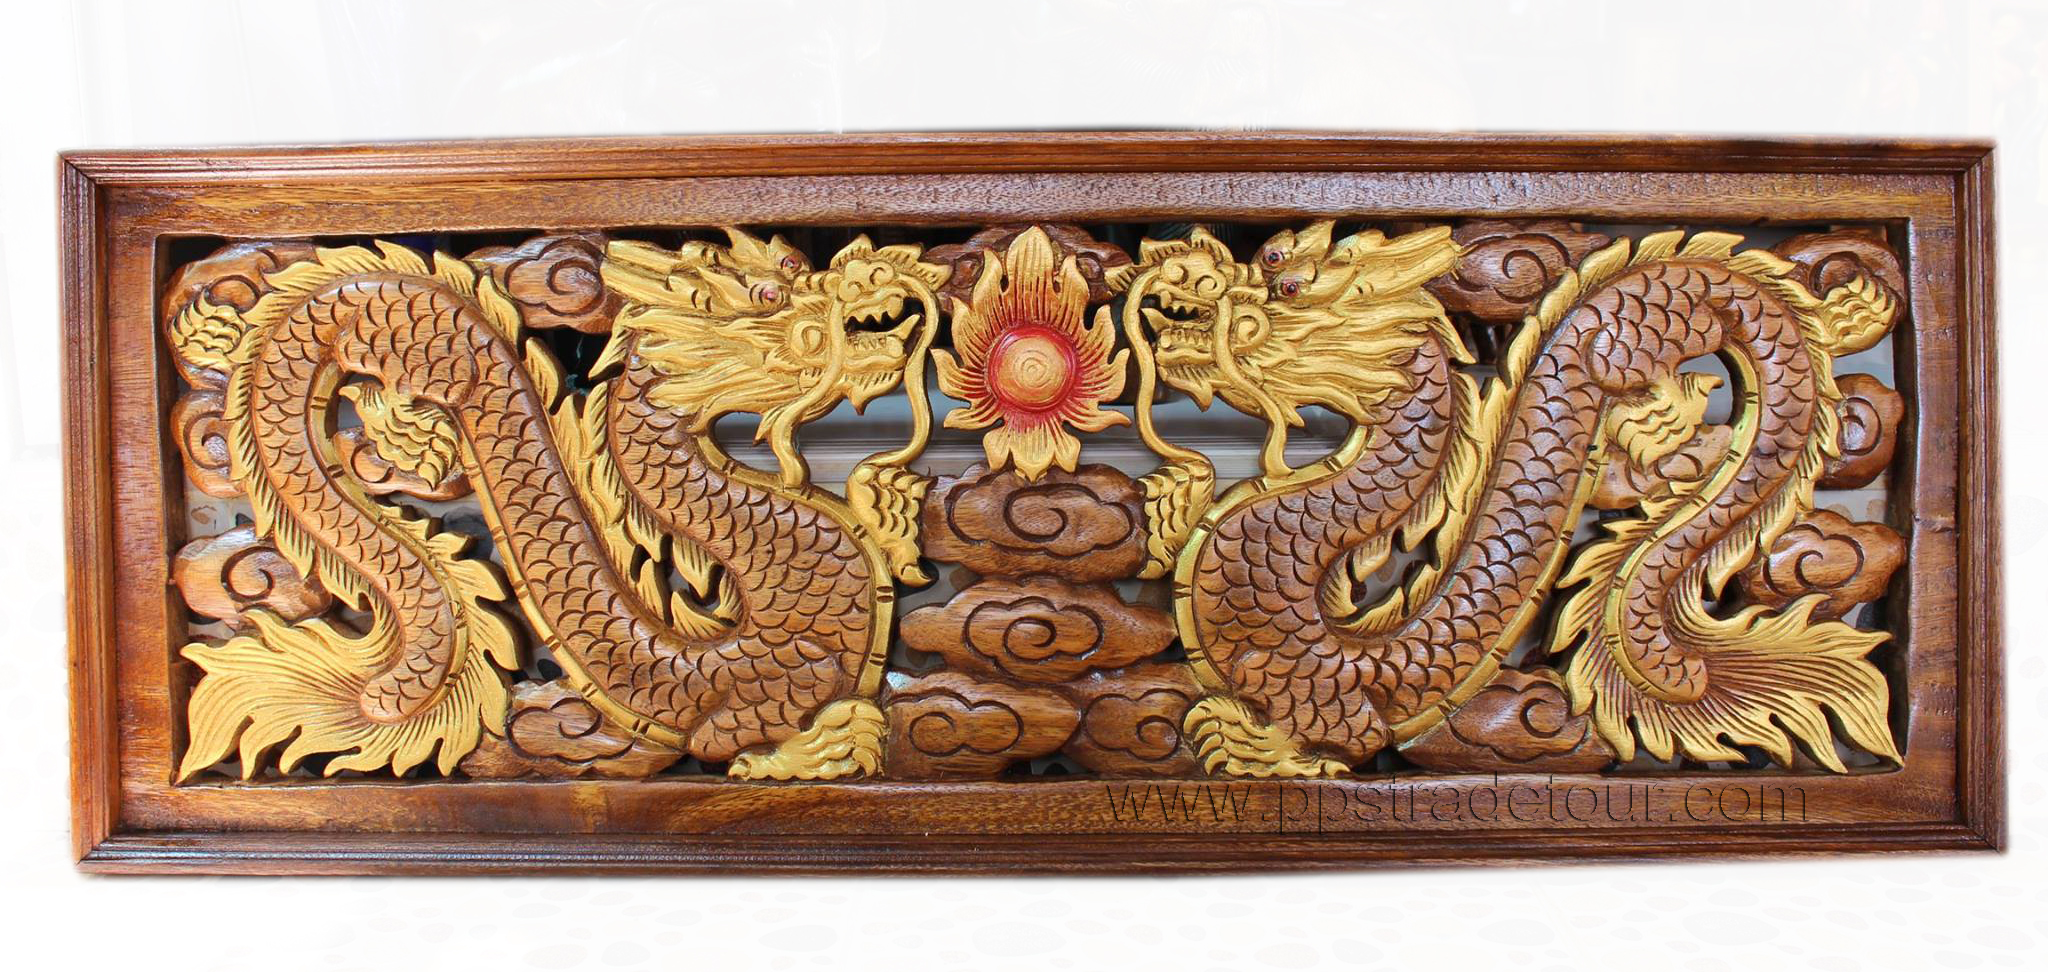 WoodCarved-2Nagas-1